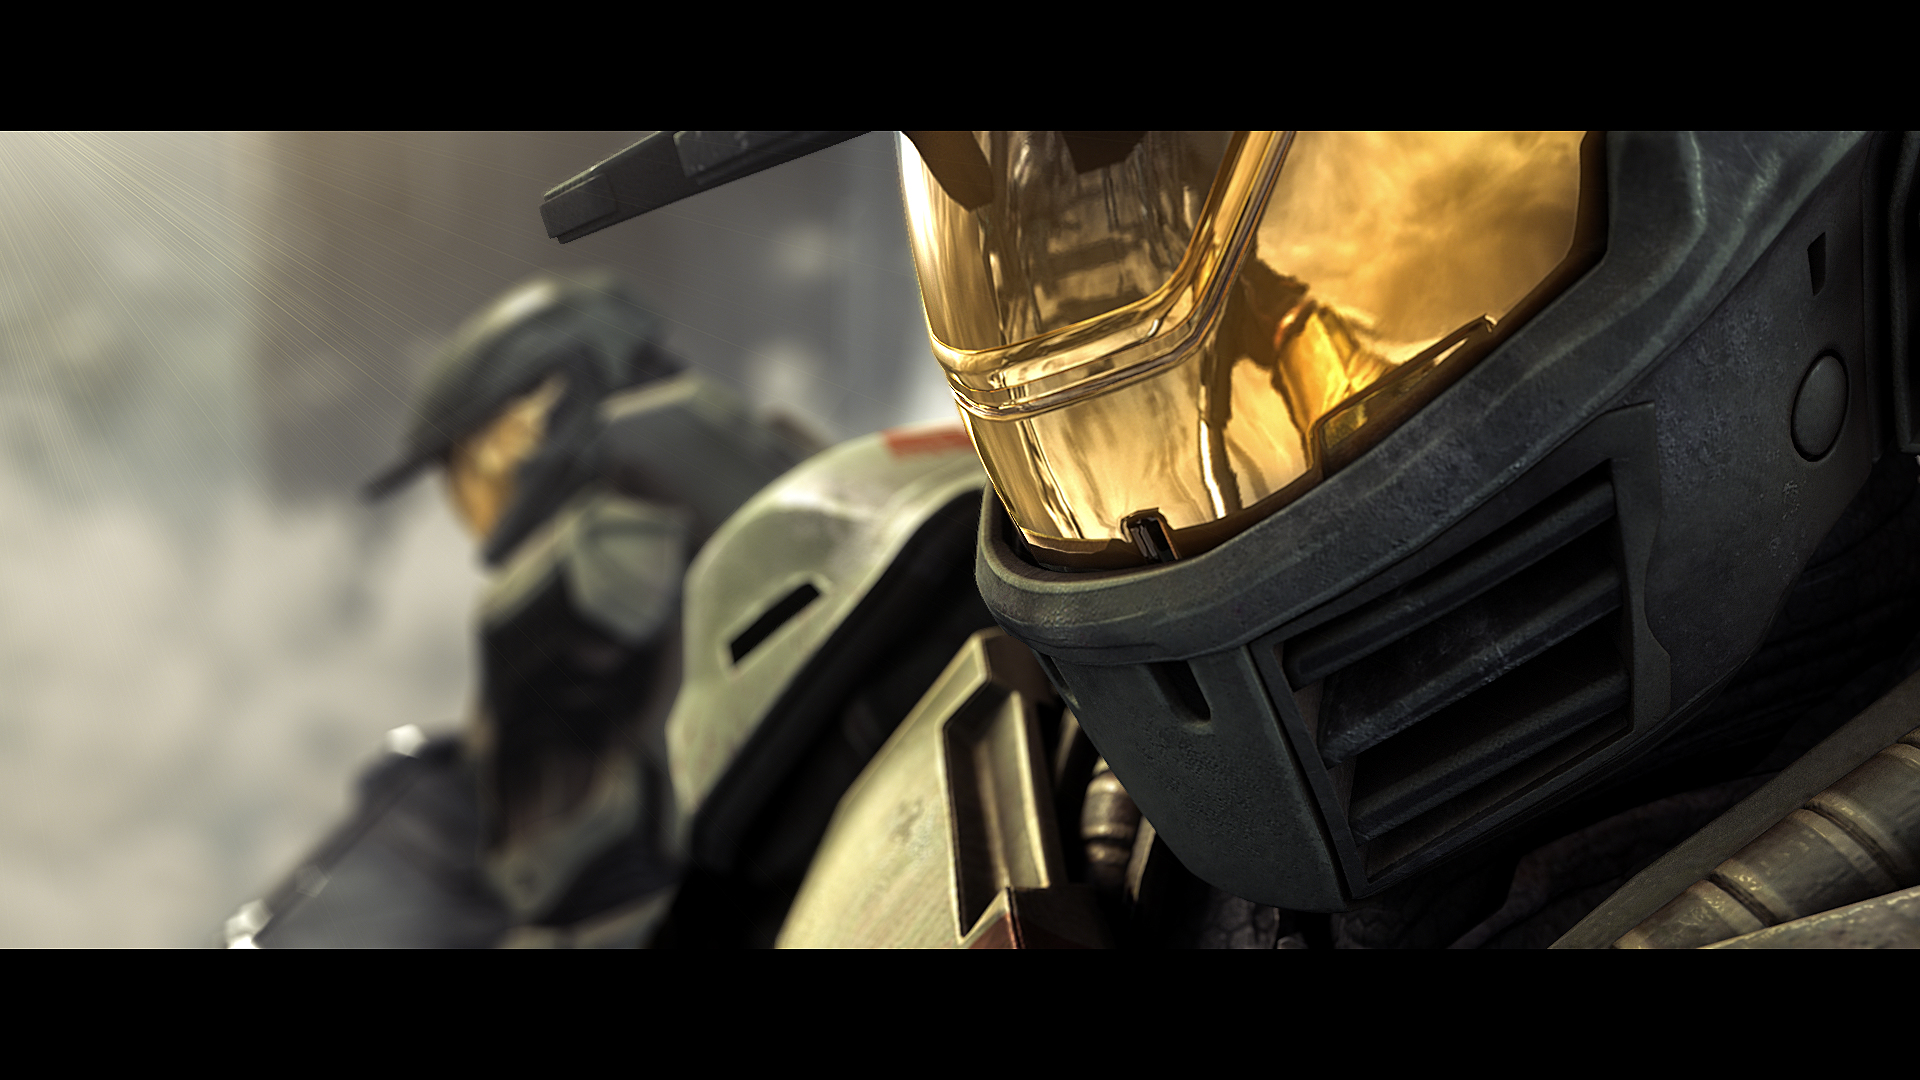 Halo Hd Wallpapers And Backgrounds 1920x1080